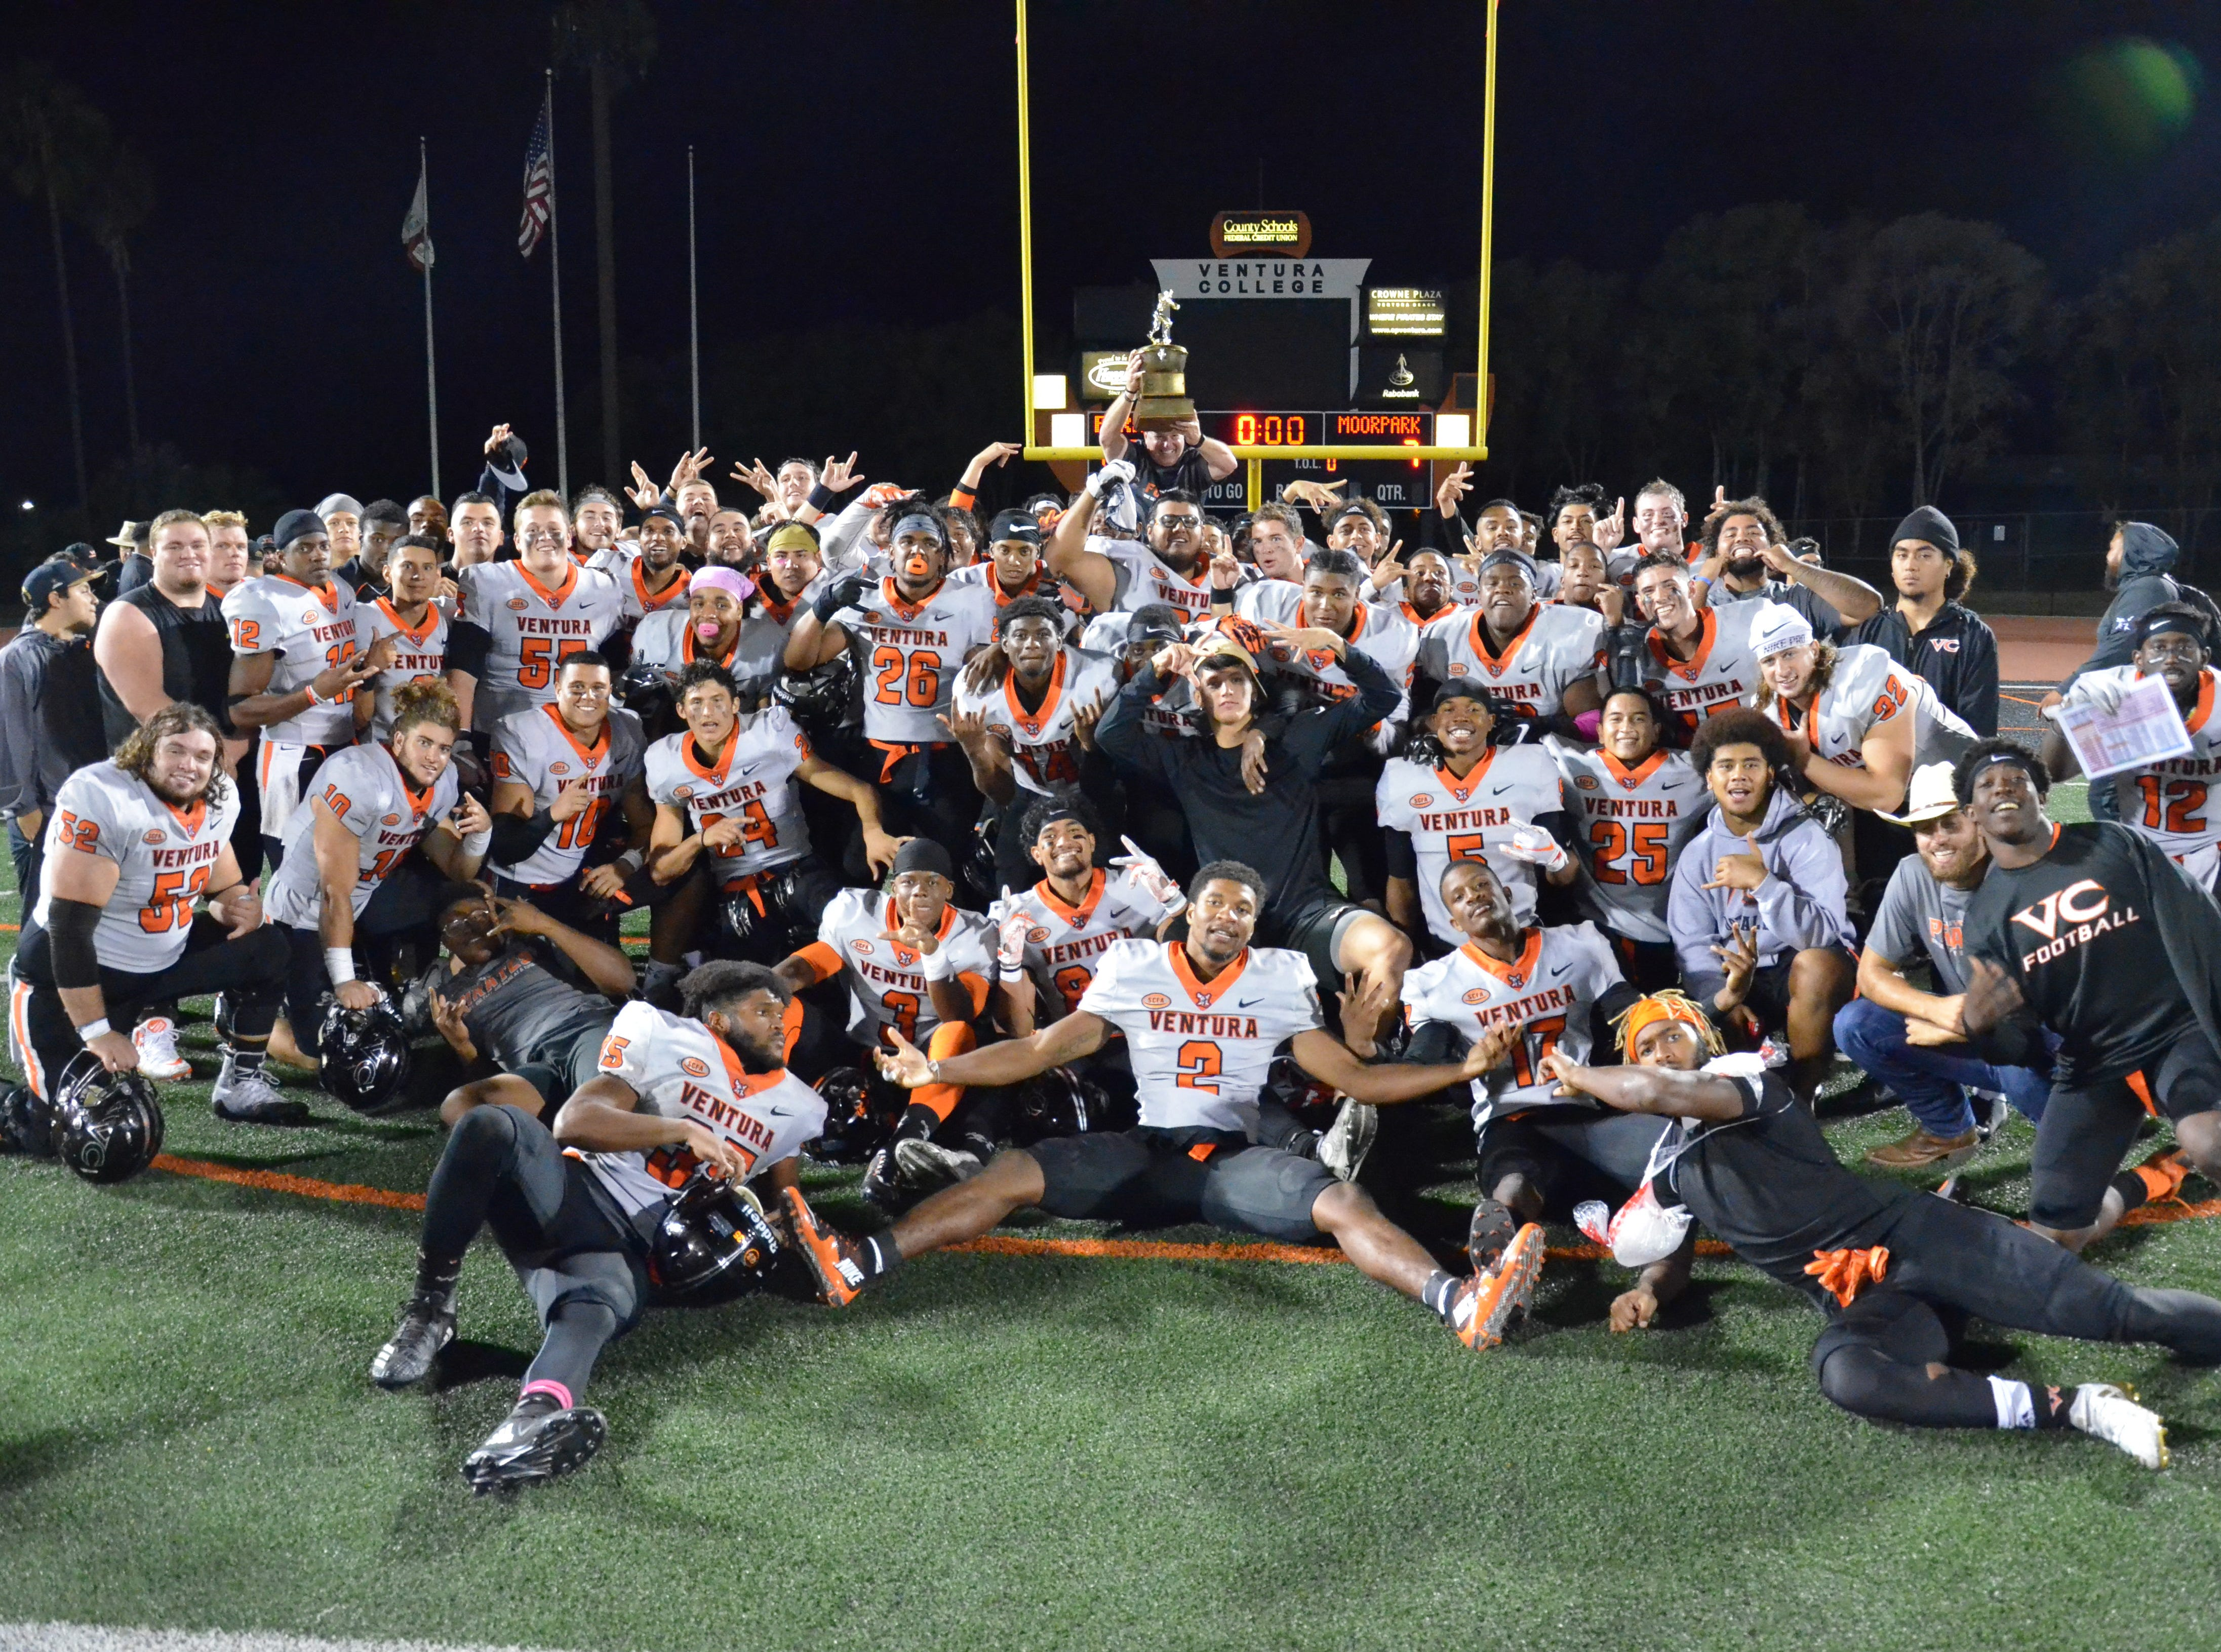 Ventura College football celebrates winning the 51st Citrus Cup game, 62-7, over rival Moorpark College on Saturday night at the VC Sportsplex.